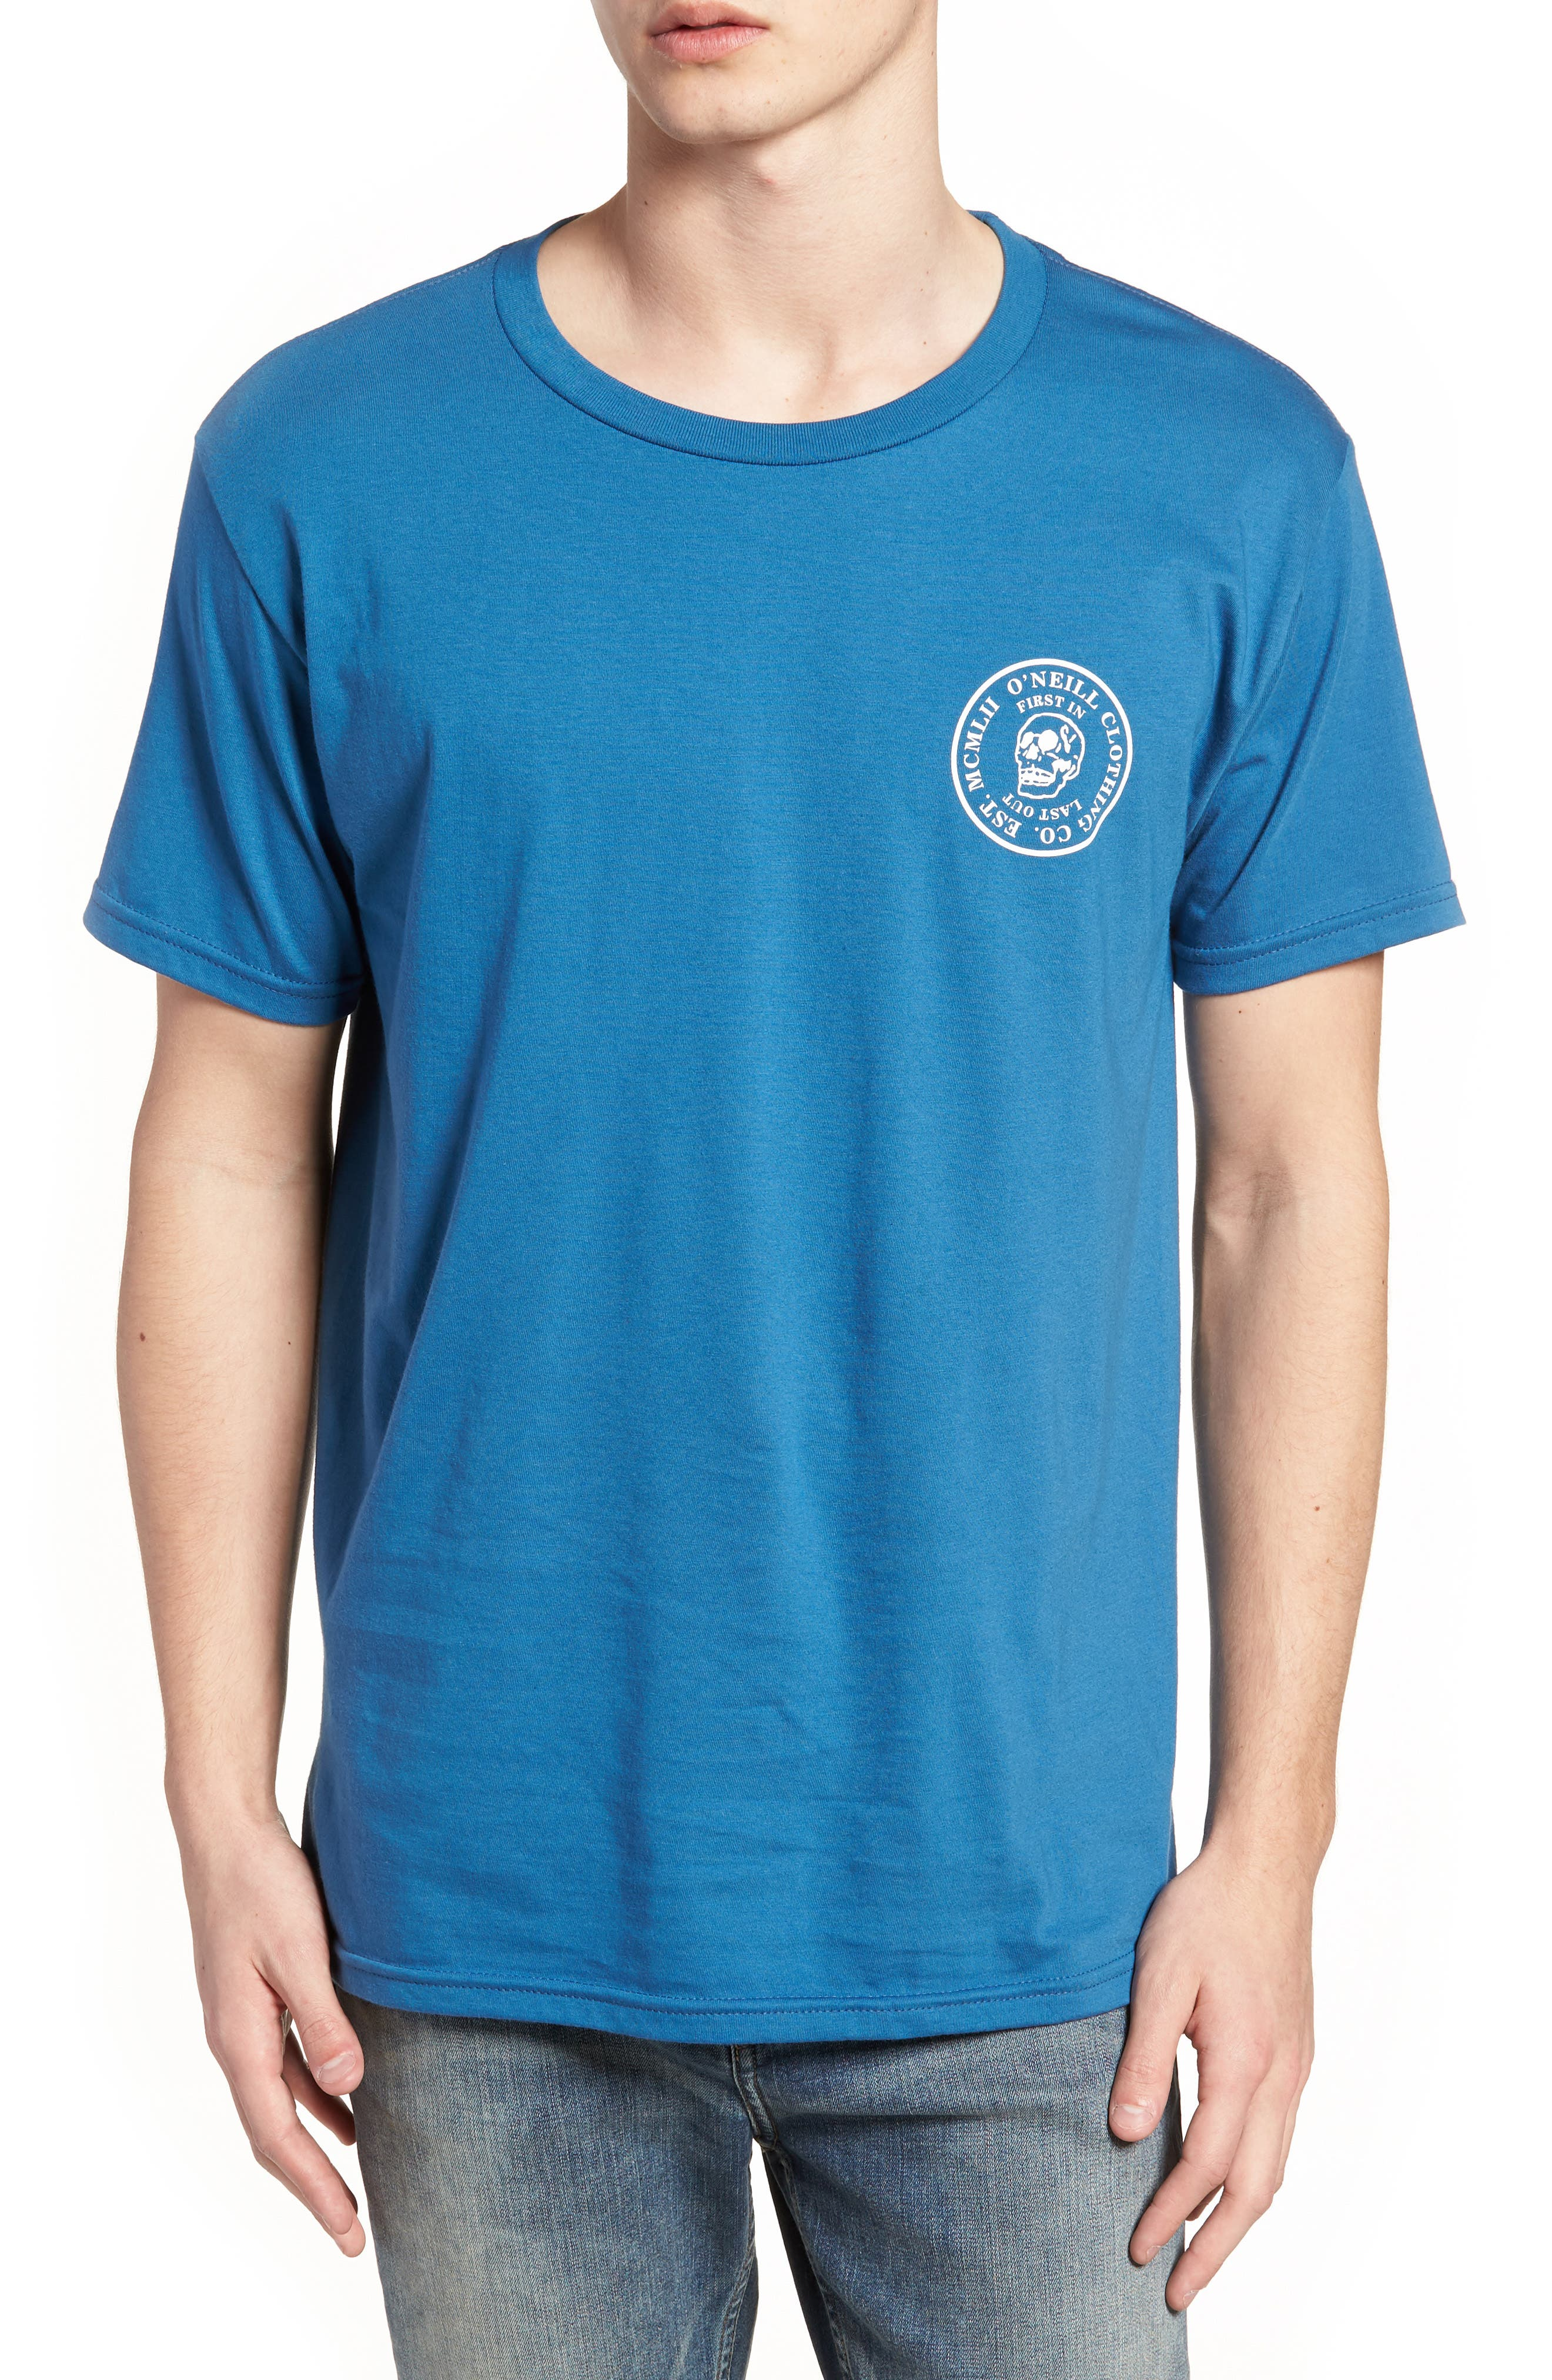 Skully Graphic T-Shirt,                         Main,                         color, Air Force Blue